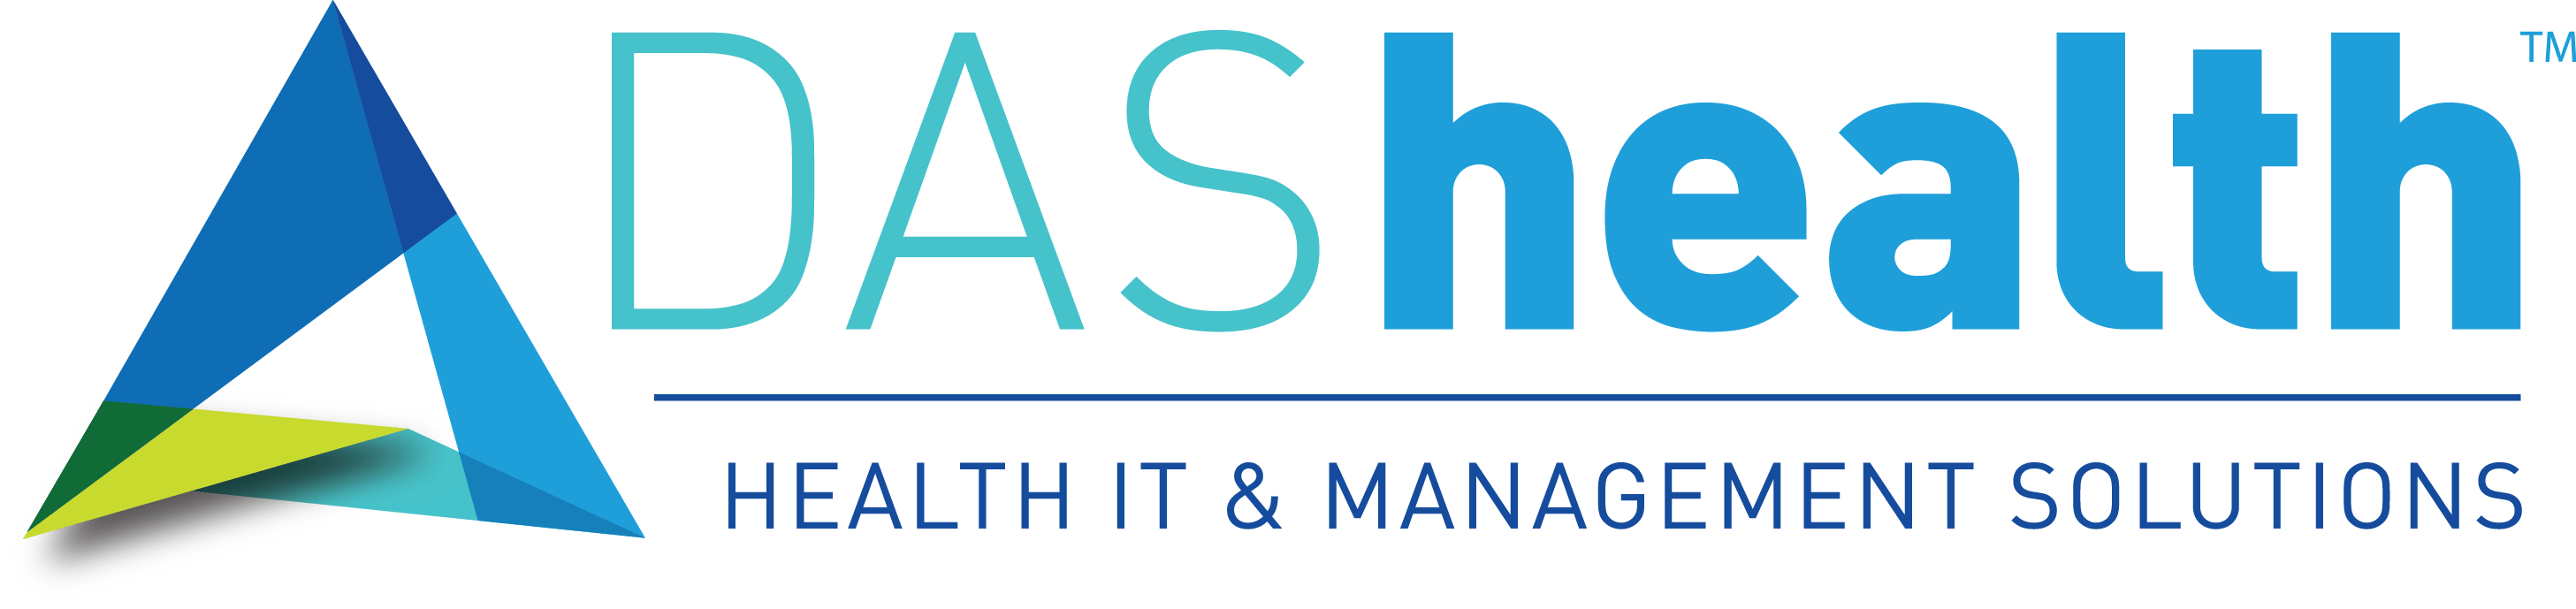 DAS Health Lands $6M to Accelerate Company Acquisition Strategy